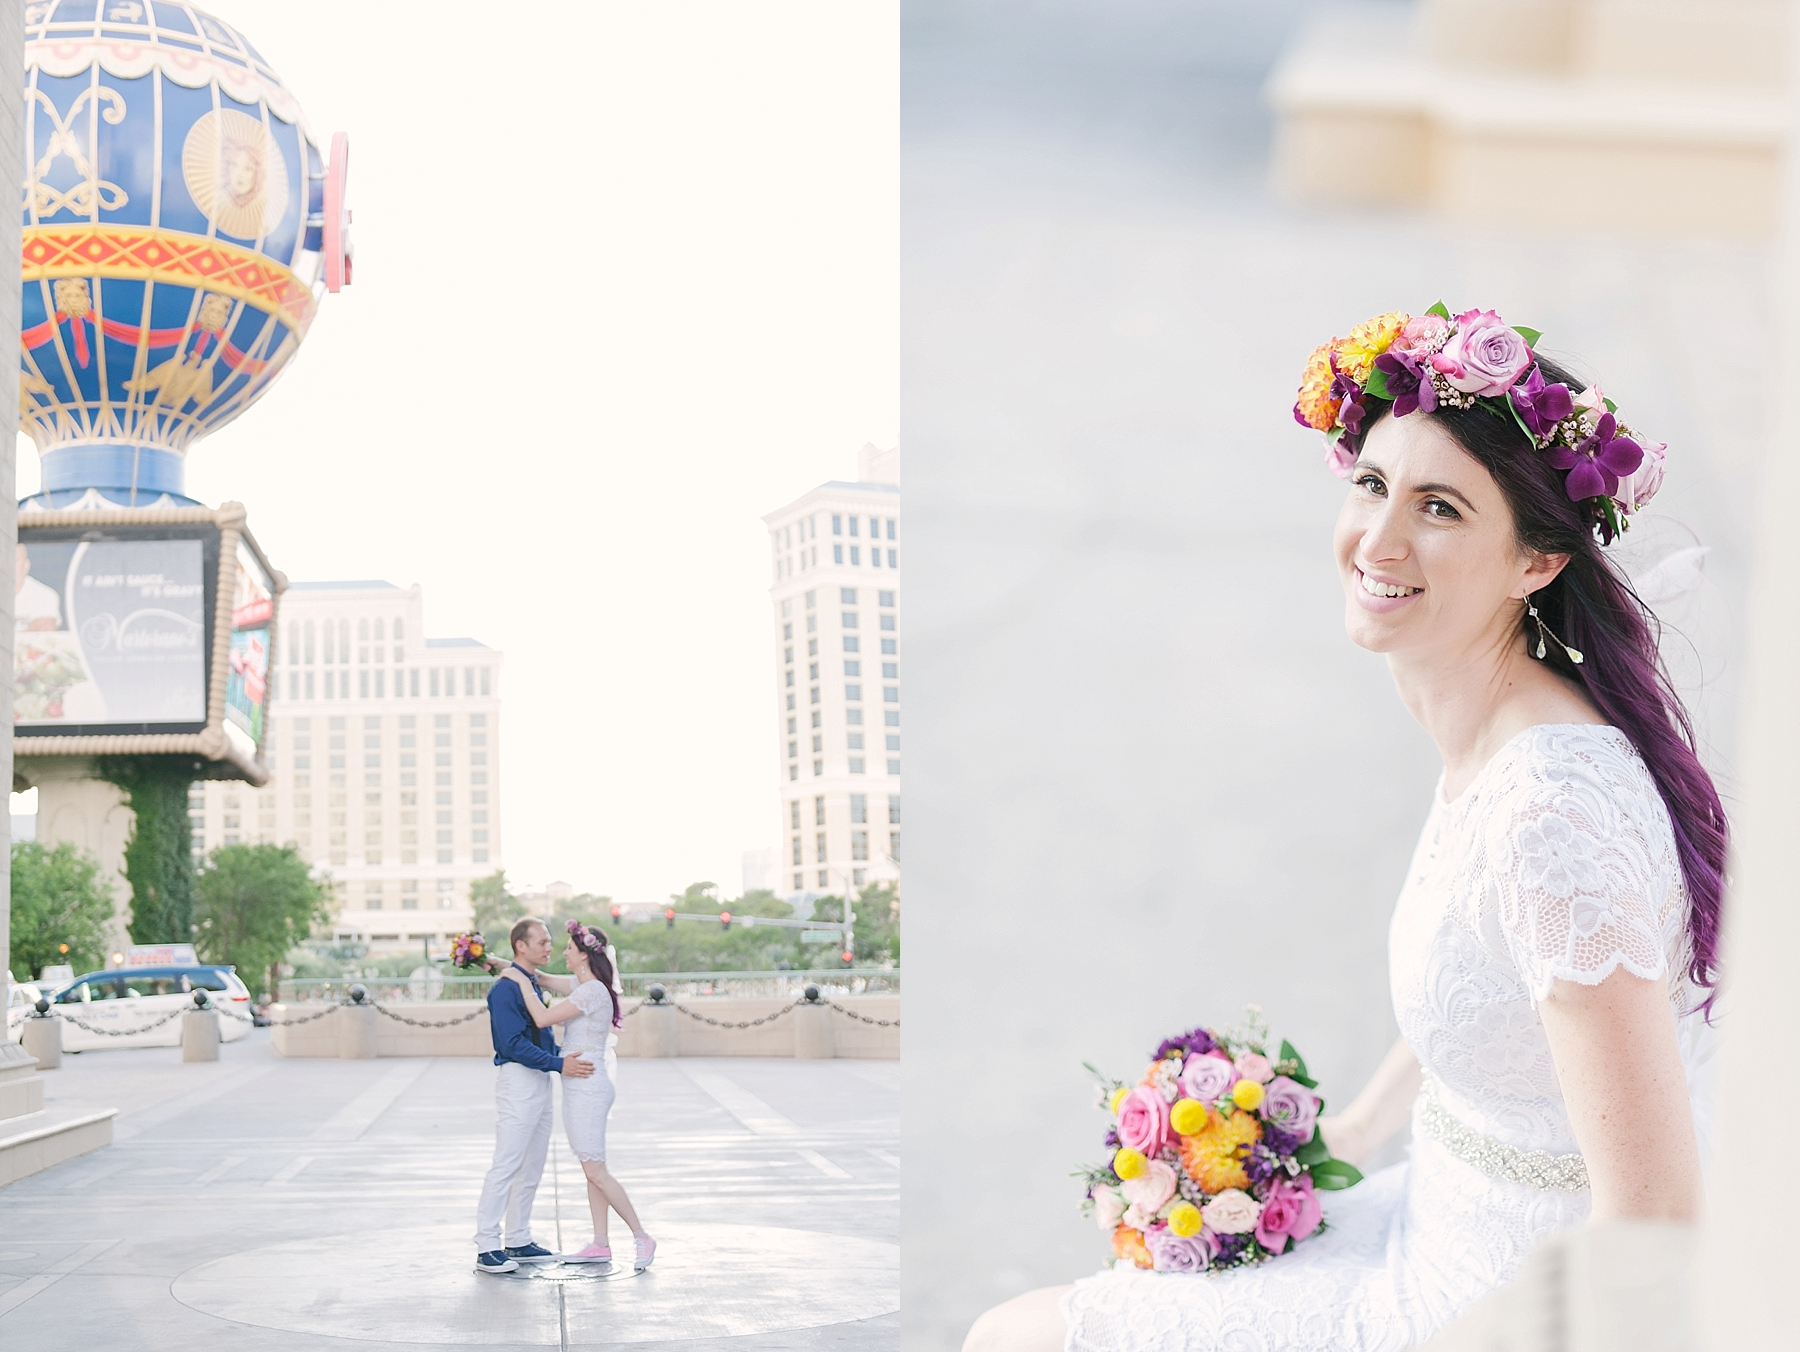 las_vegas_elopement_photography_blog-02.jpg